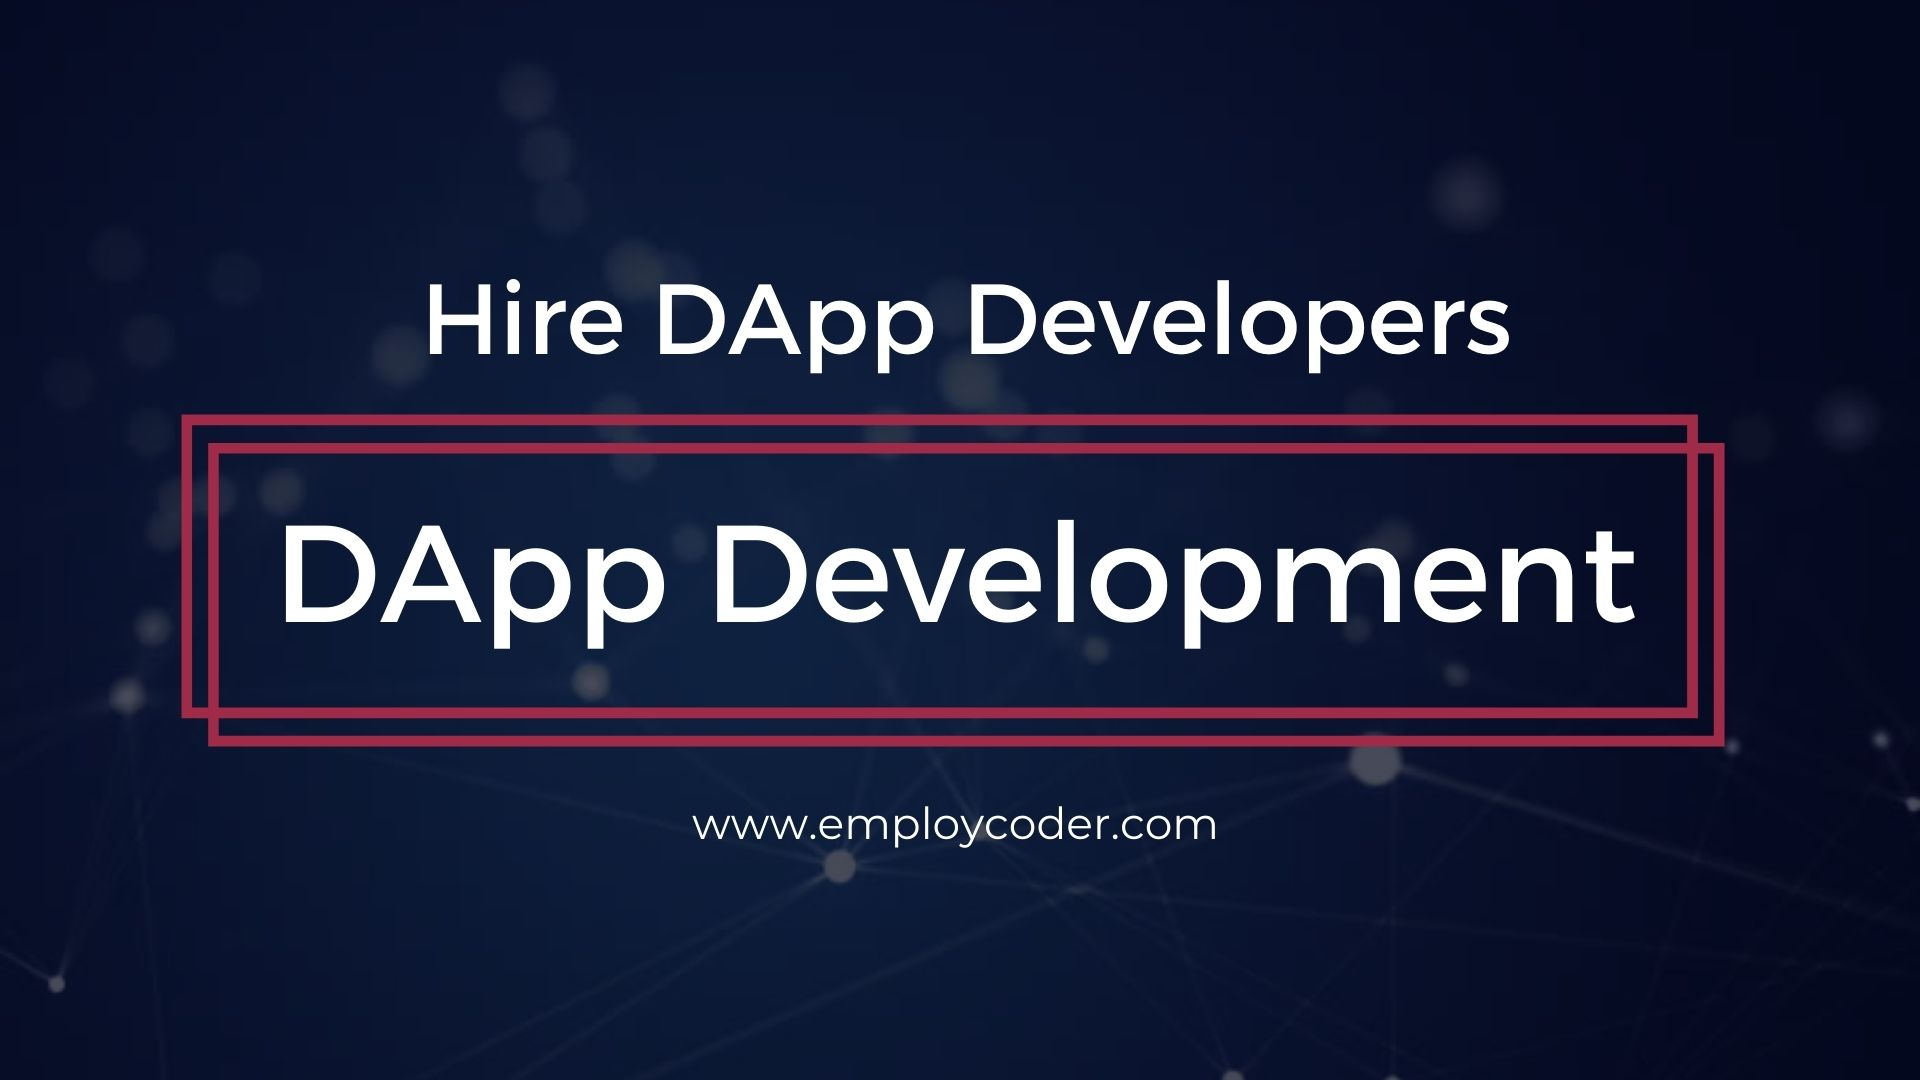 Hire DApp Developers to Build your DApps